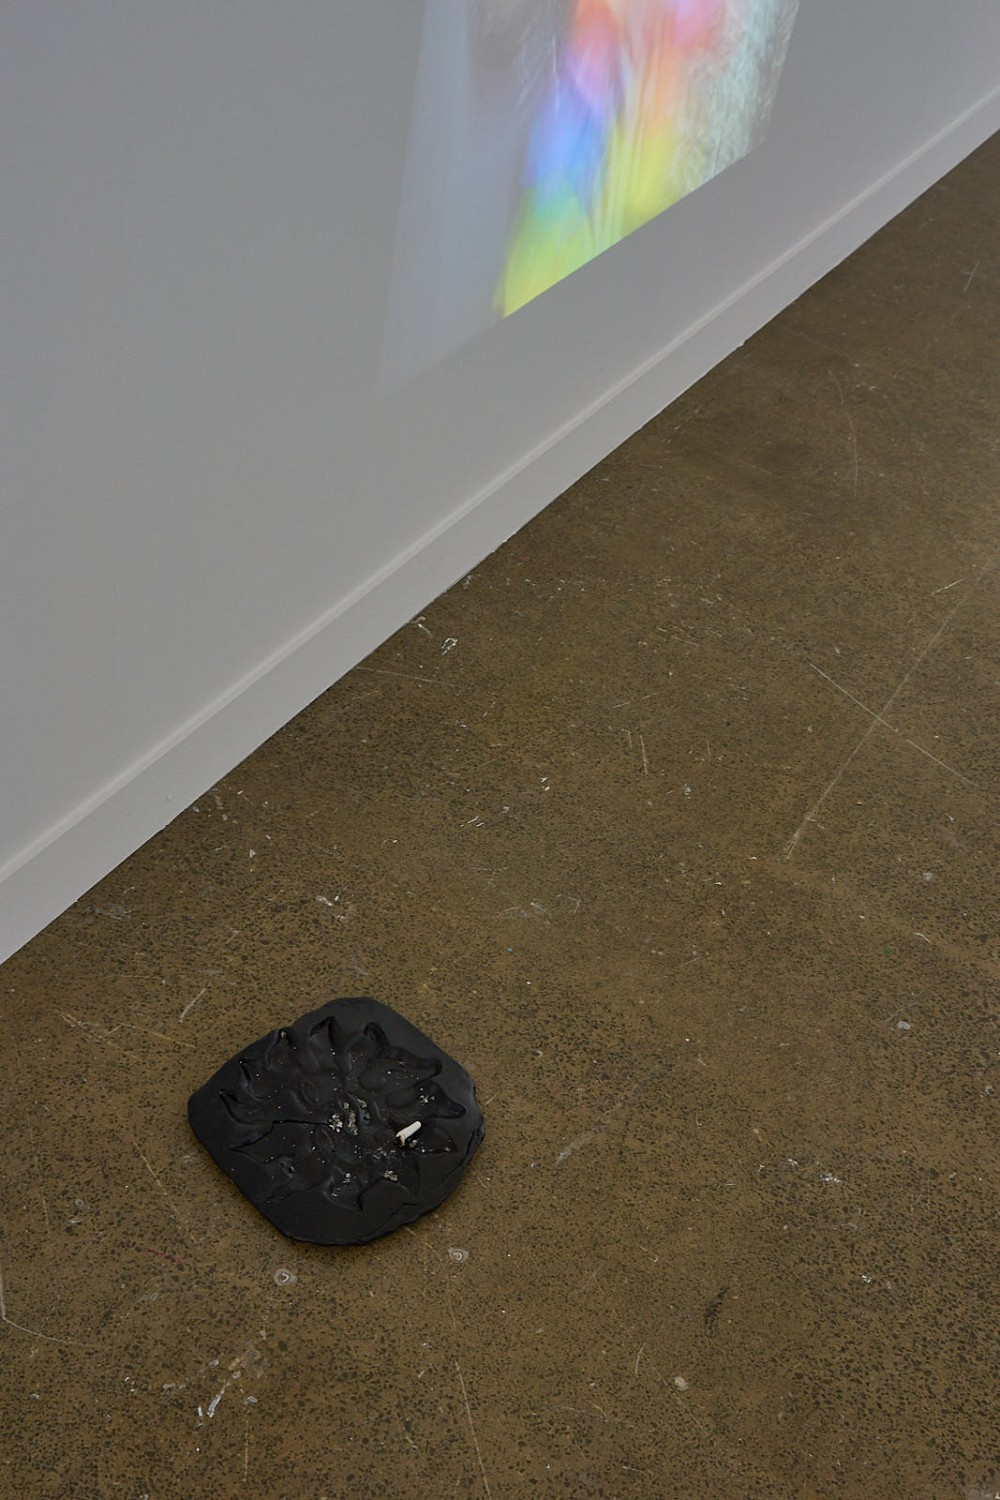 *Outsider Artifact* Sun sculpture from the entranceway to 'Basement Specialist Adult Store and Cruise Club' imprinted in non-firing natural clay, acrylic paint, cigarette butt, ash. Daniel John Corbett Sanders 2019  Image: Andreea Christache